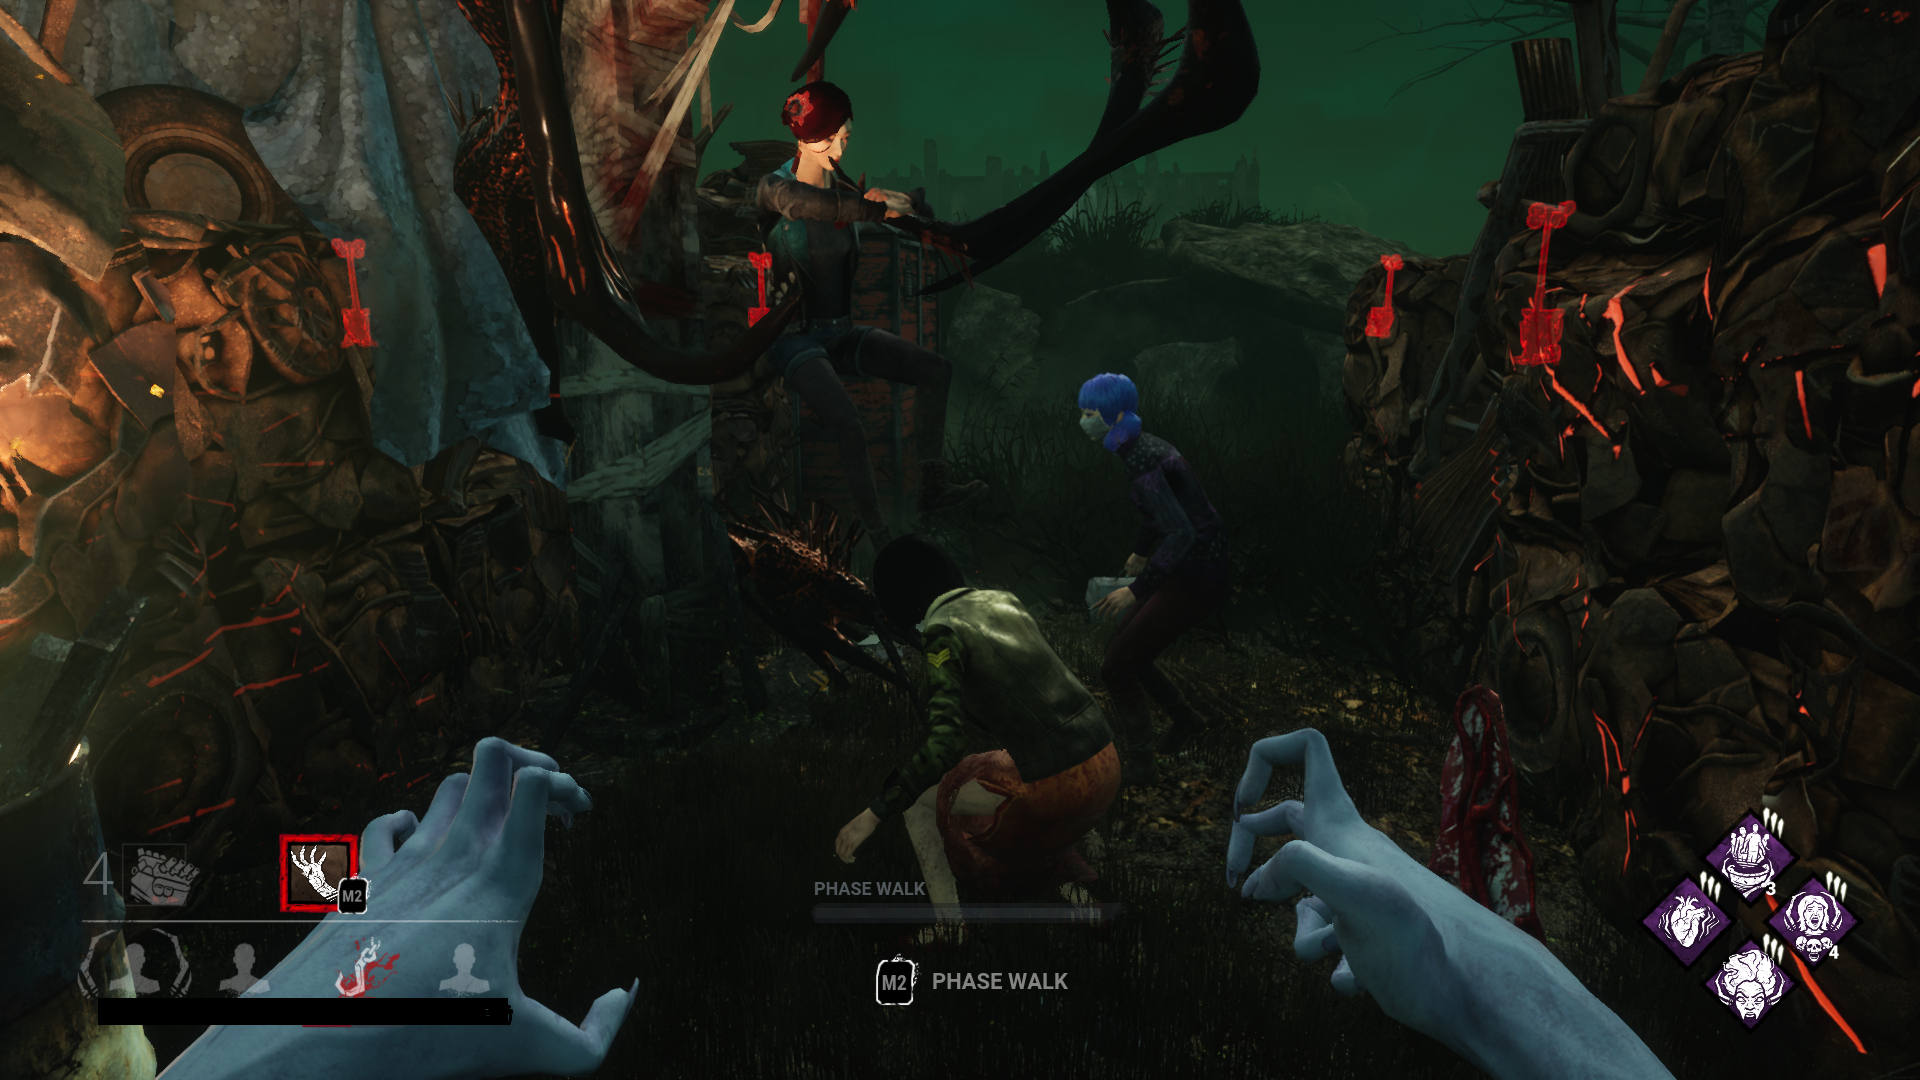 Not porn, SFW] Asian face sitting foursome — Dead By Daylight